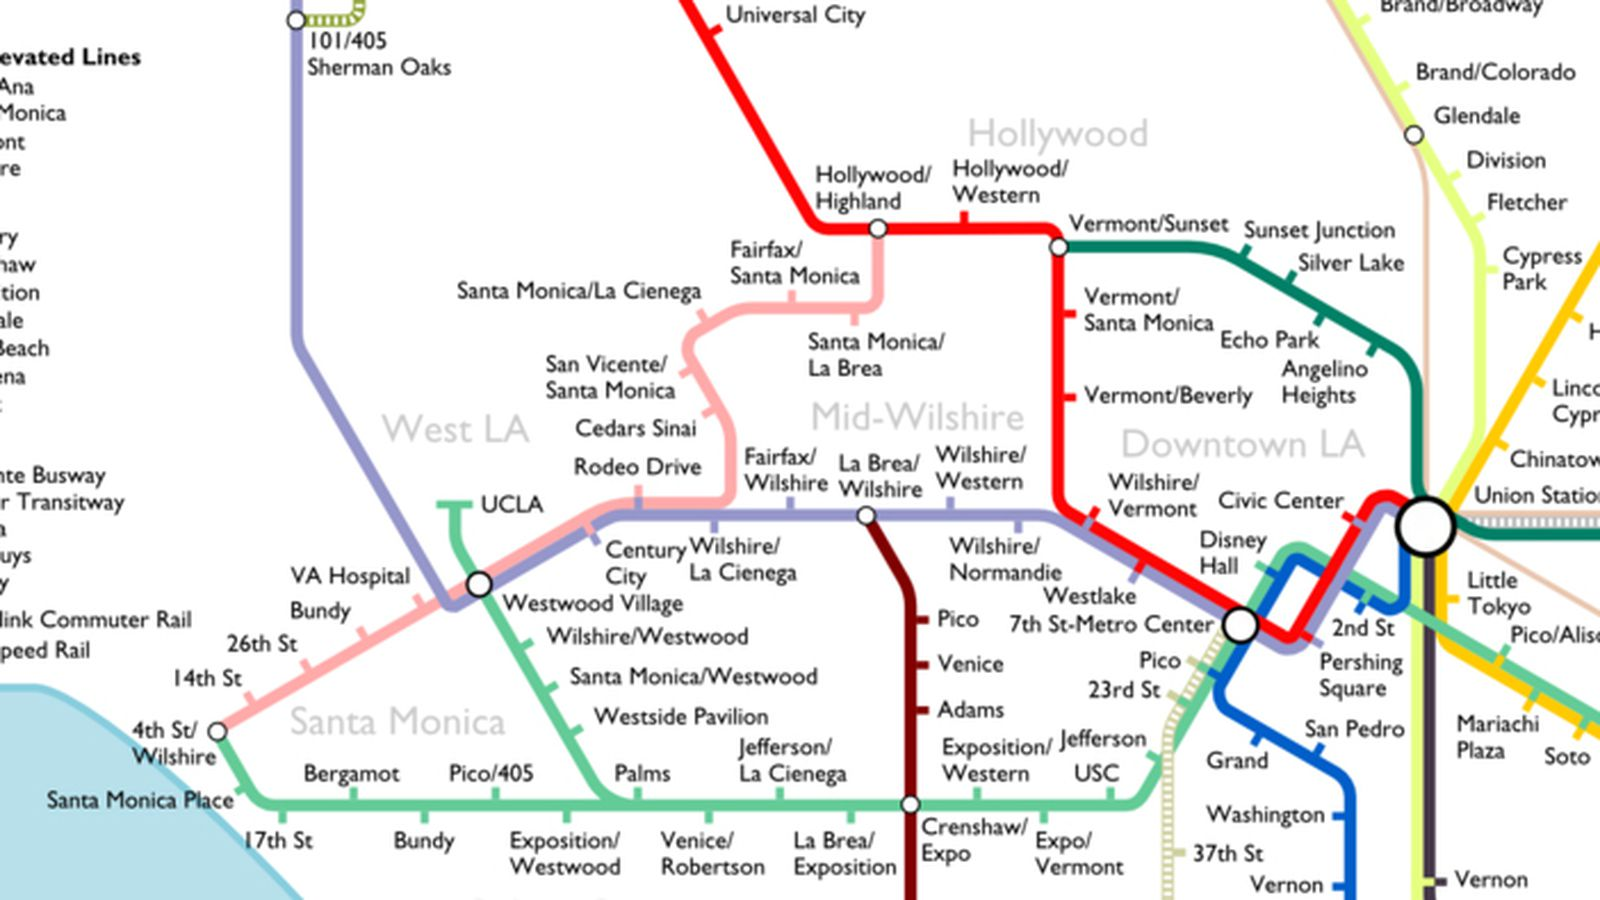 Metro Map La The Most Optimistic Possible LA Metro Rail Map of 2040   Curbed LA Metro Map La